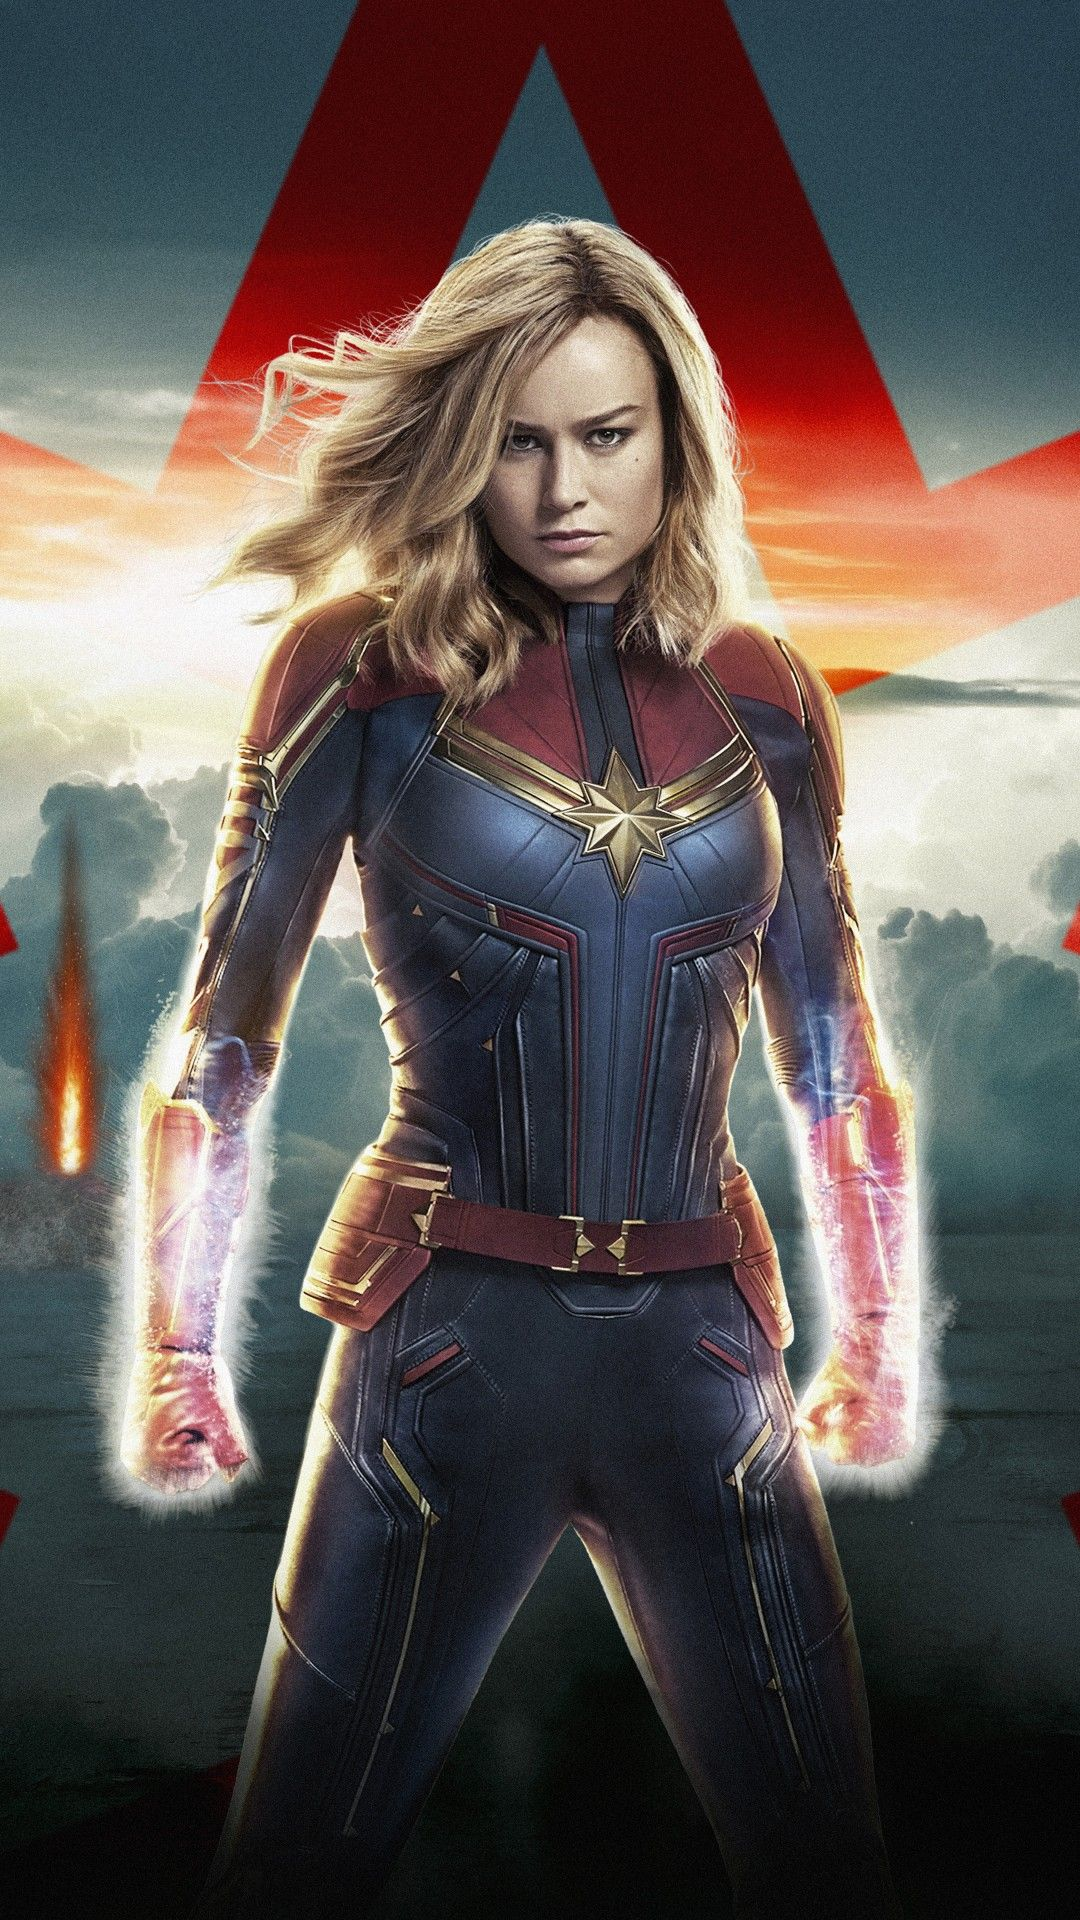 Captain Marvel Iphone Background Hupages Download Iphone Wallpapers Captain Marvel Marvel 4k Marvel Wallpaper